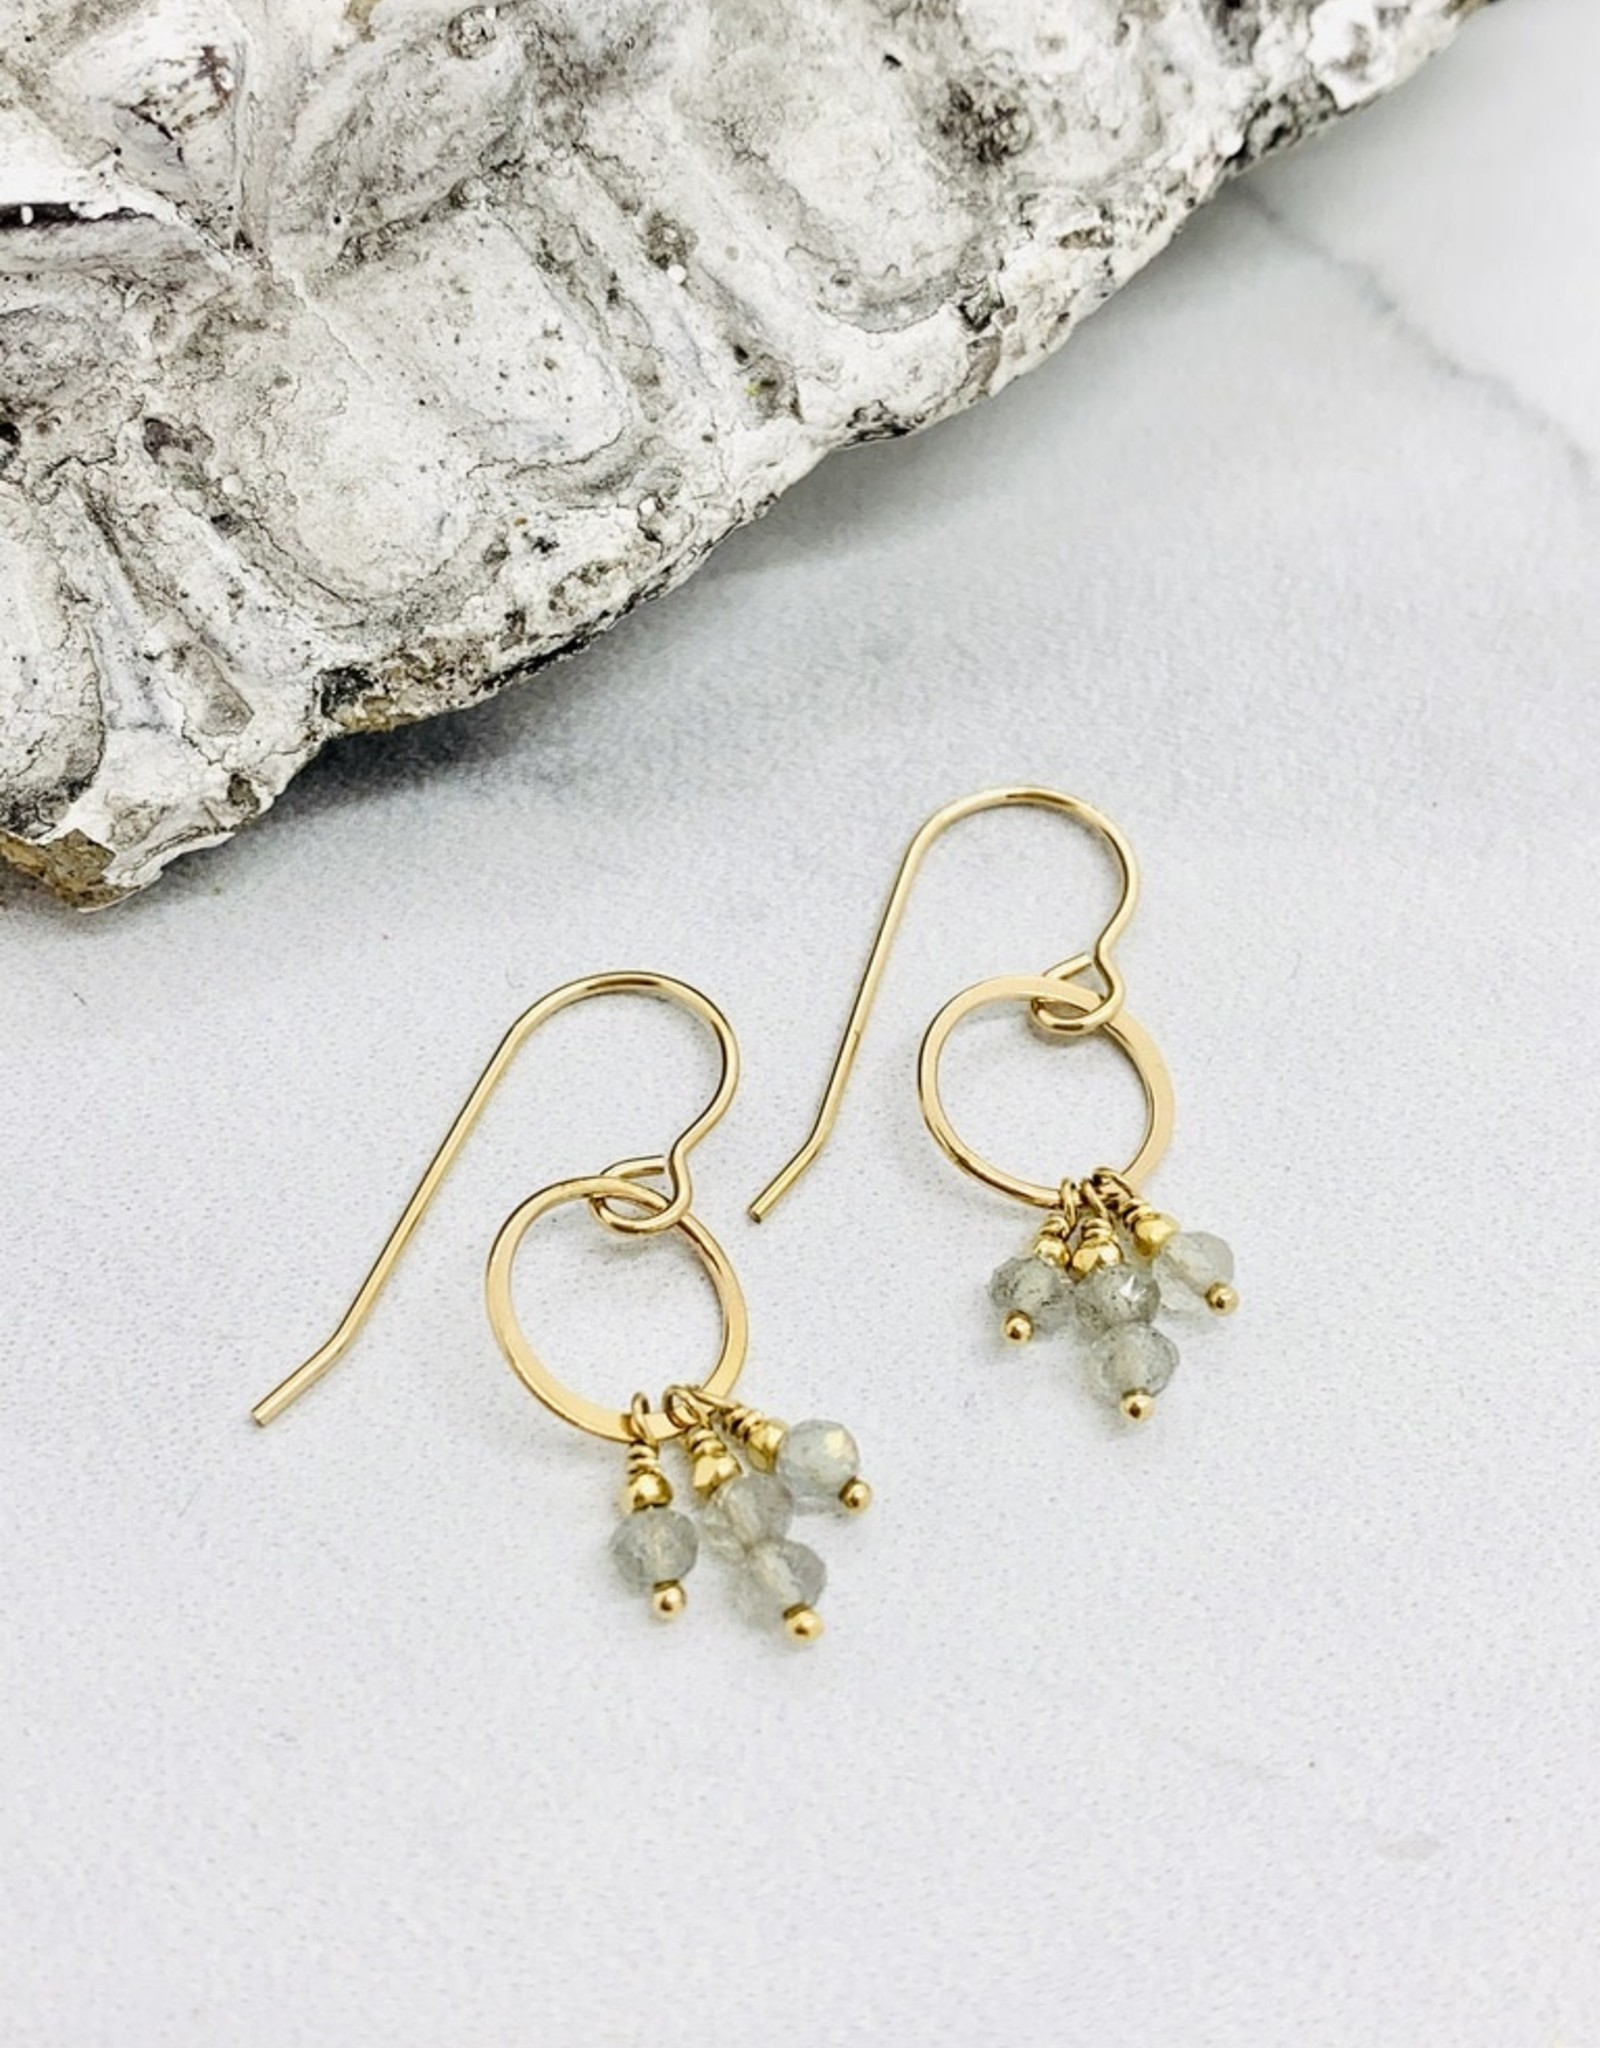 Handmade 14kt Gold Filled Circle with 3mm Faceted Labradorite Earrings